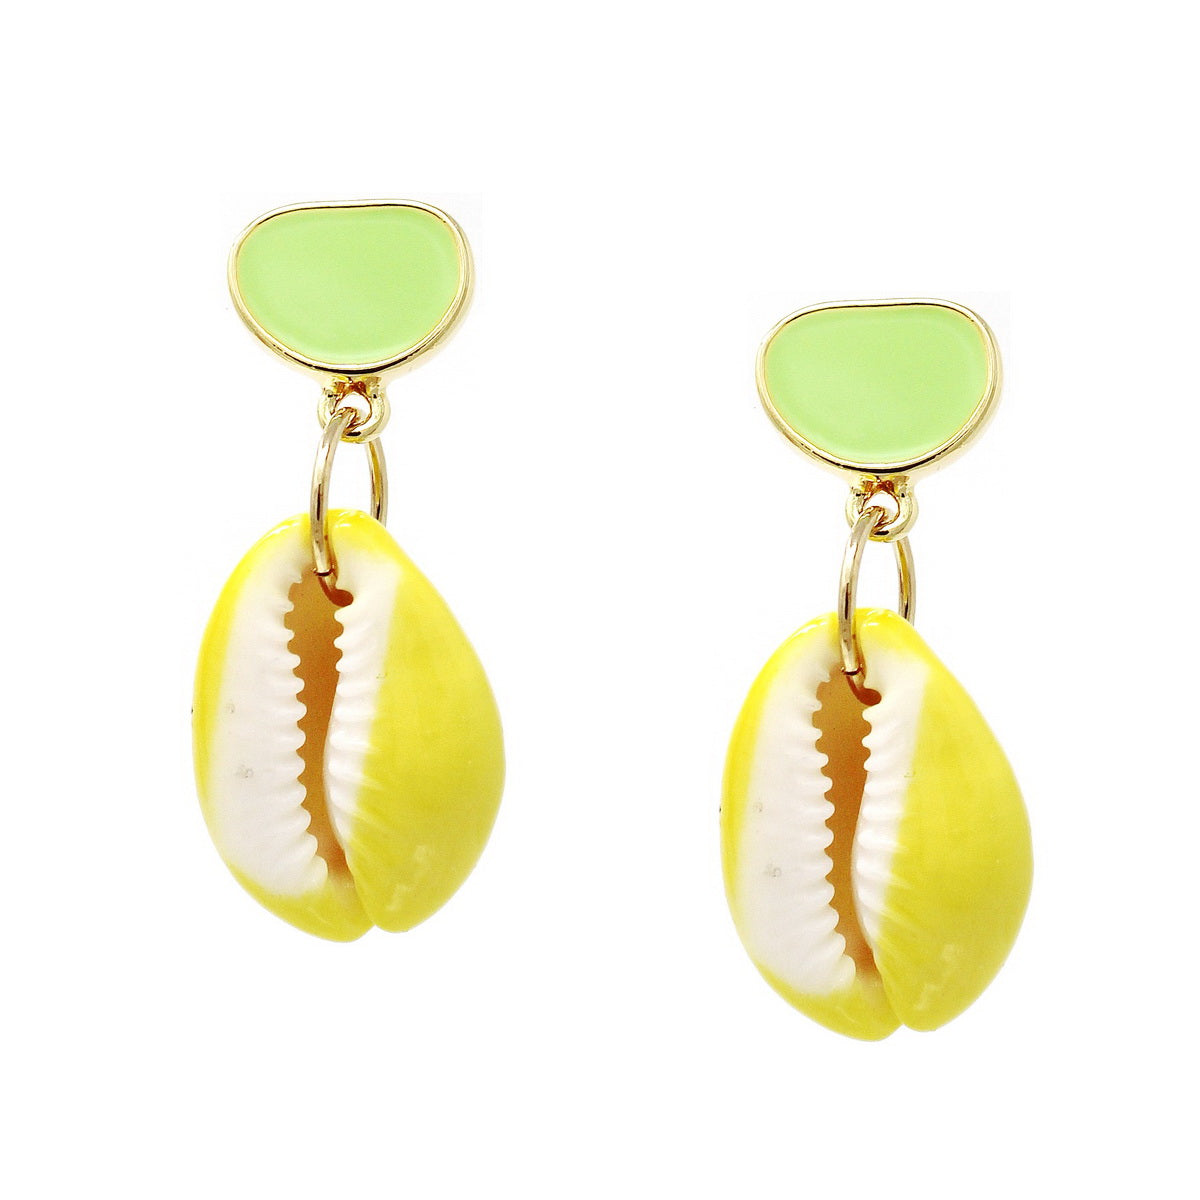 Color Pop Edition: Paint Dipped Puka Shell Drop Earrings